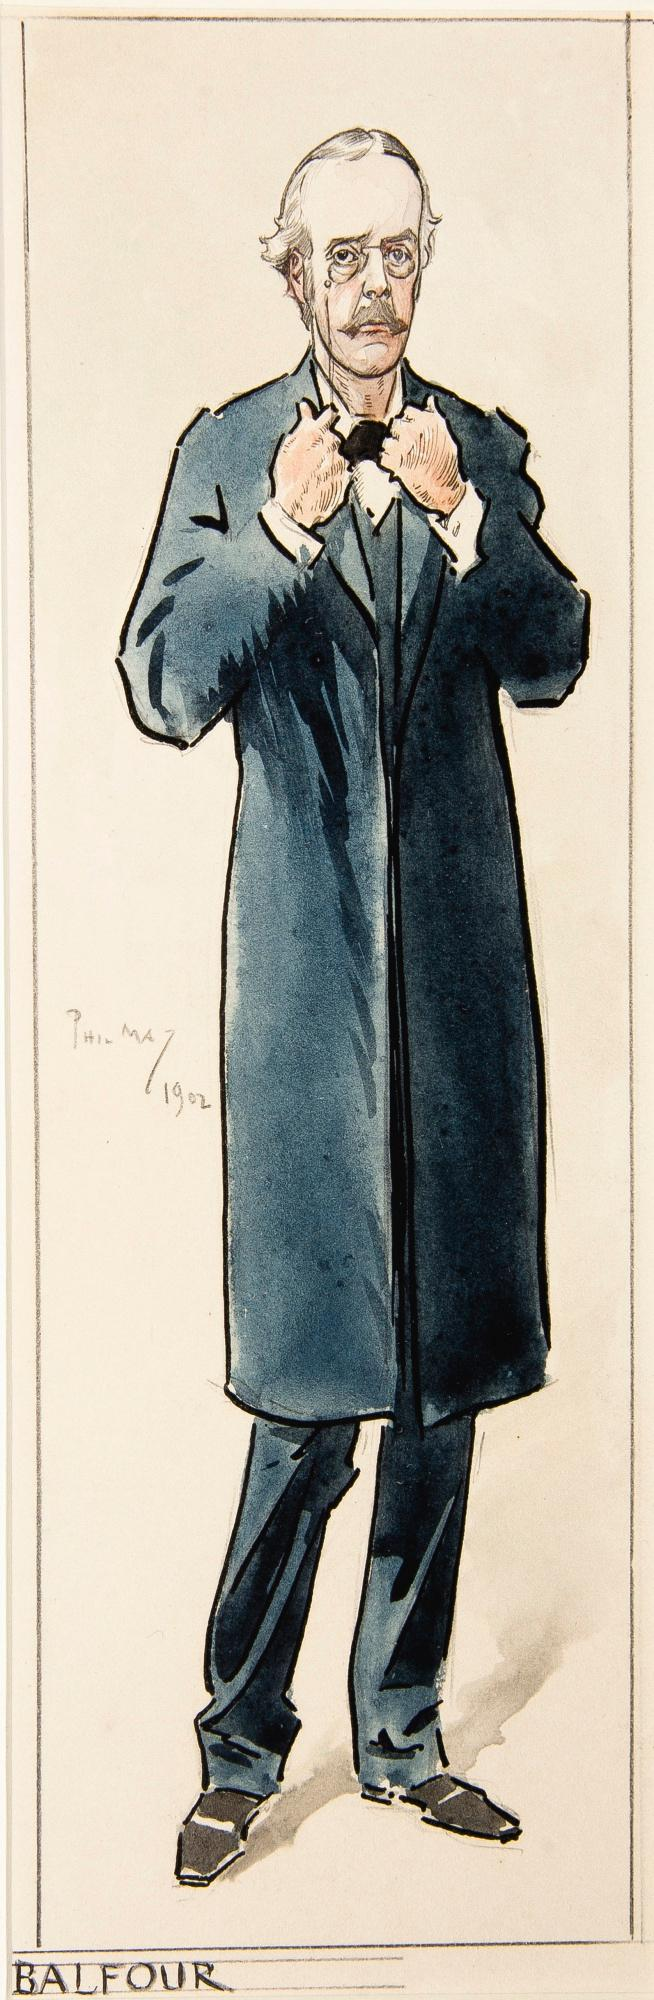 MAY, 'BALFOUR', INK AND WATERCOLOUR, 1902